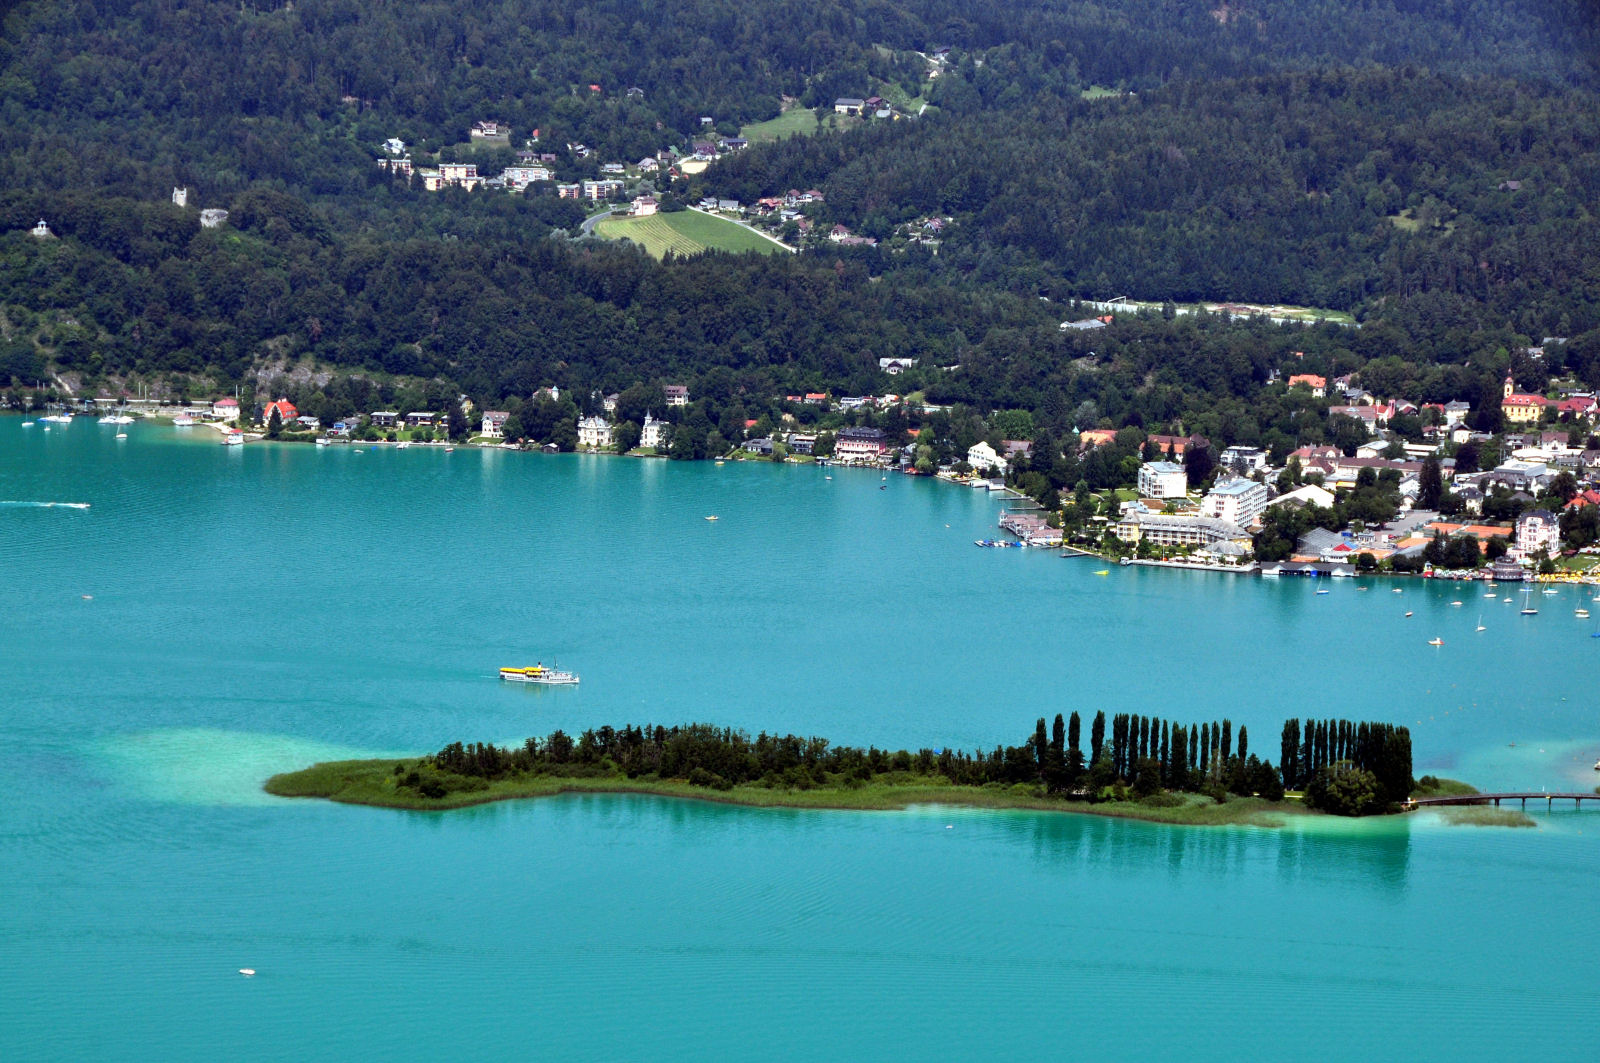 lake-woerthersee-summer-austria